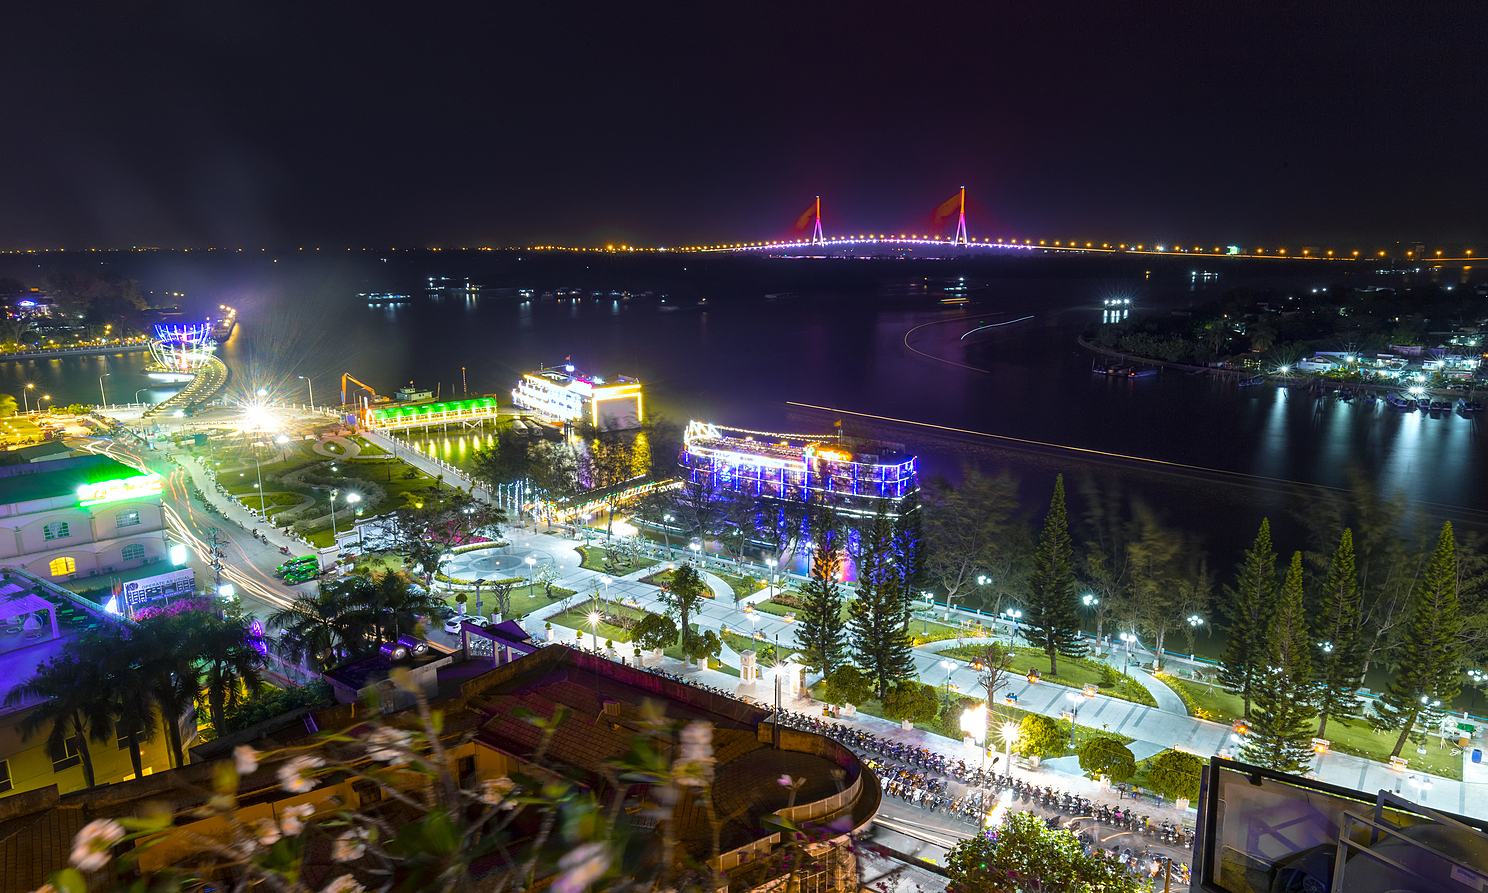 The southern city of Can Tho at night. Photo by Shutterstock/Huy Thoai.